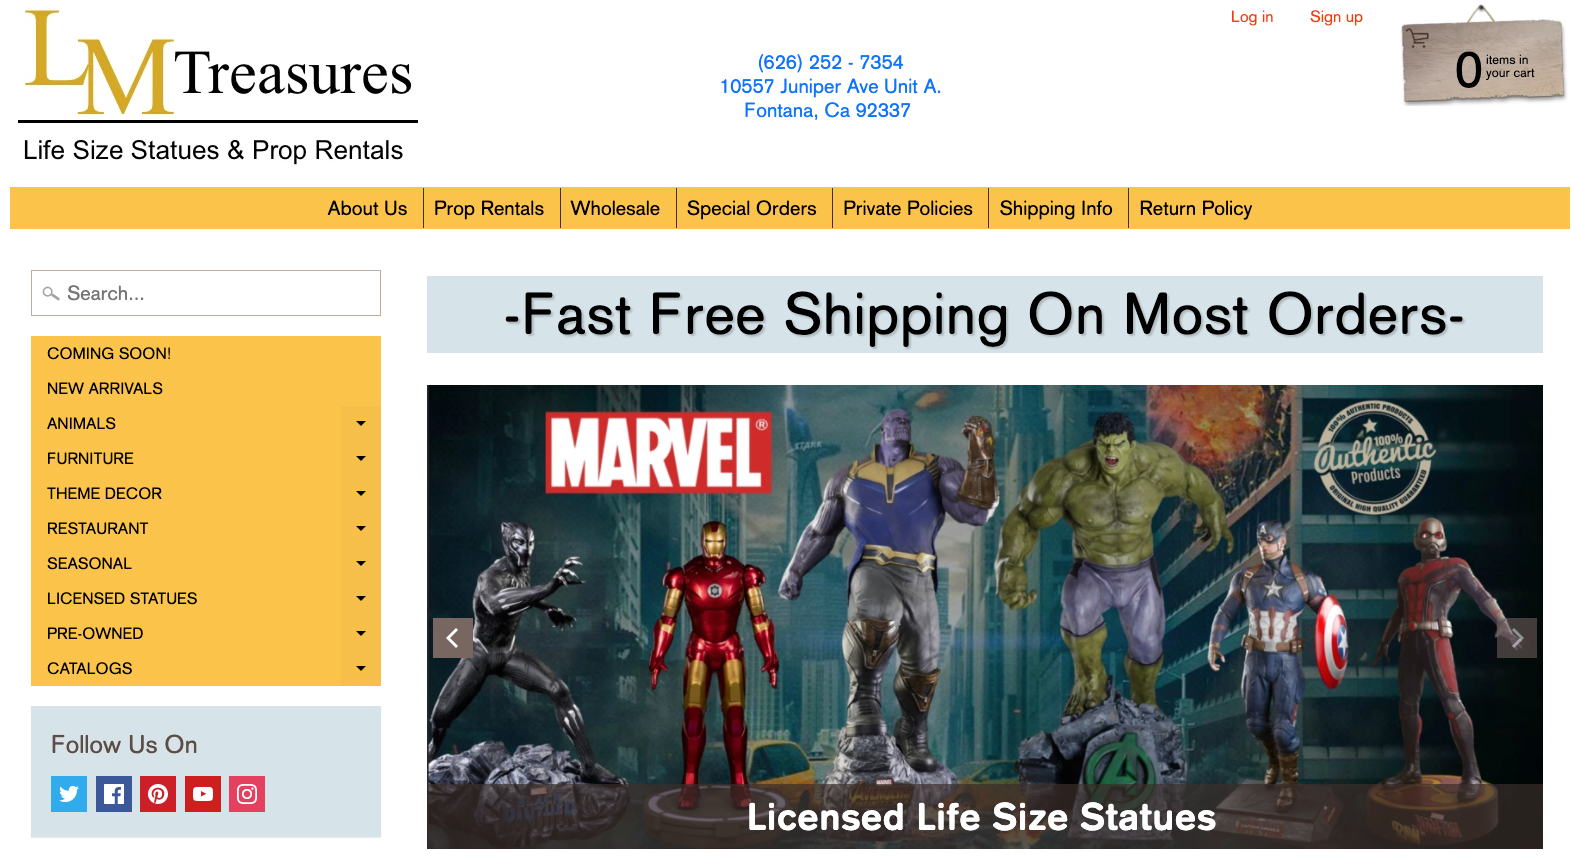 LM Treasures Life Size Statues